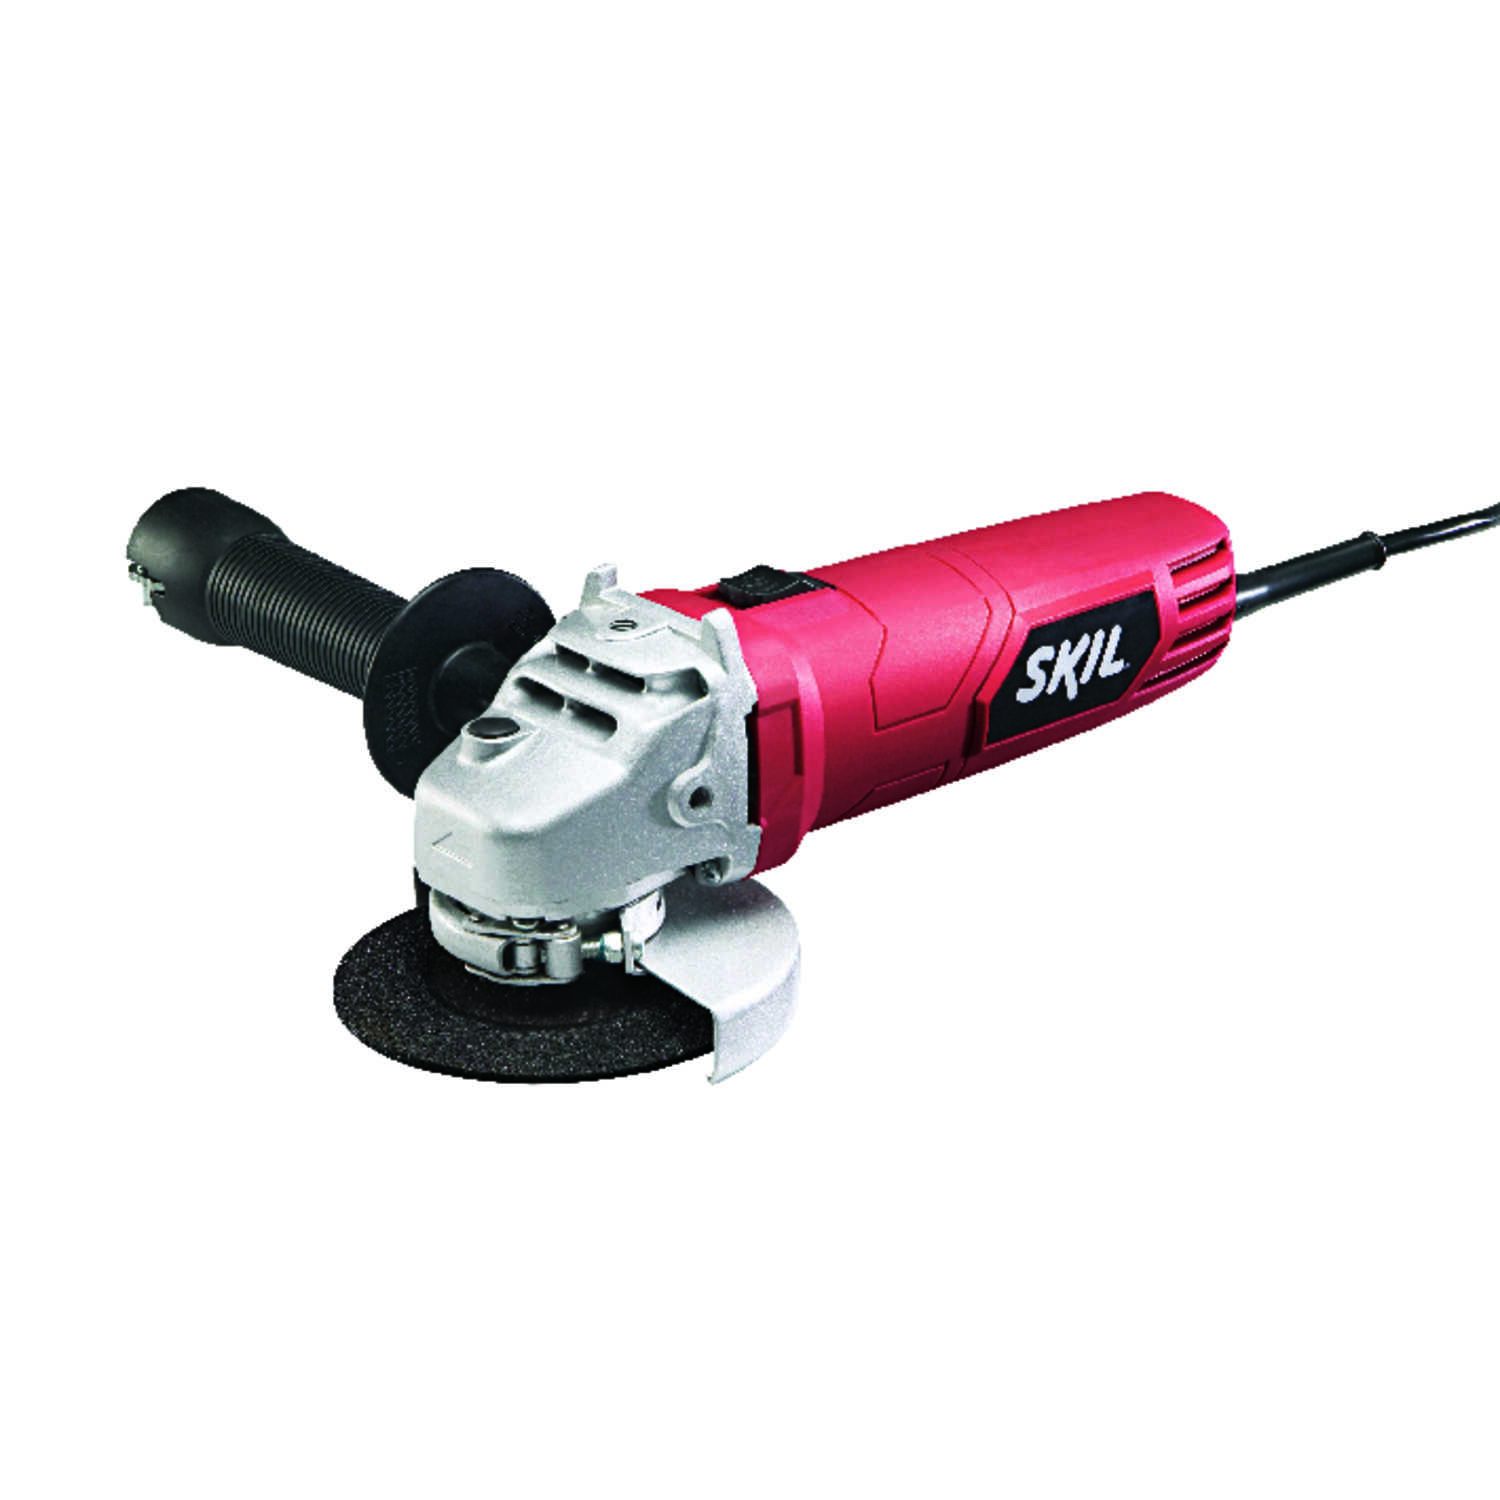 Skil  4-1/2 in. 6 amps Small  120 volt Kit 11500 rpm Angle Grinder  Corded